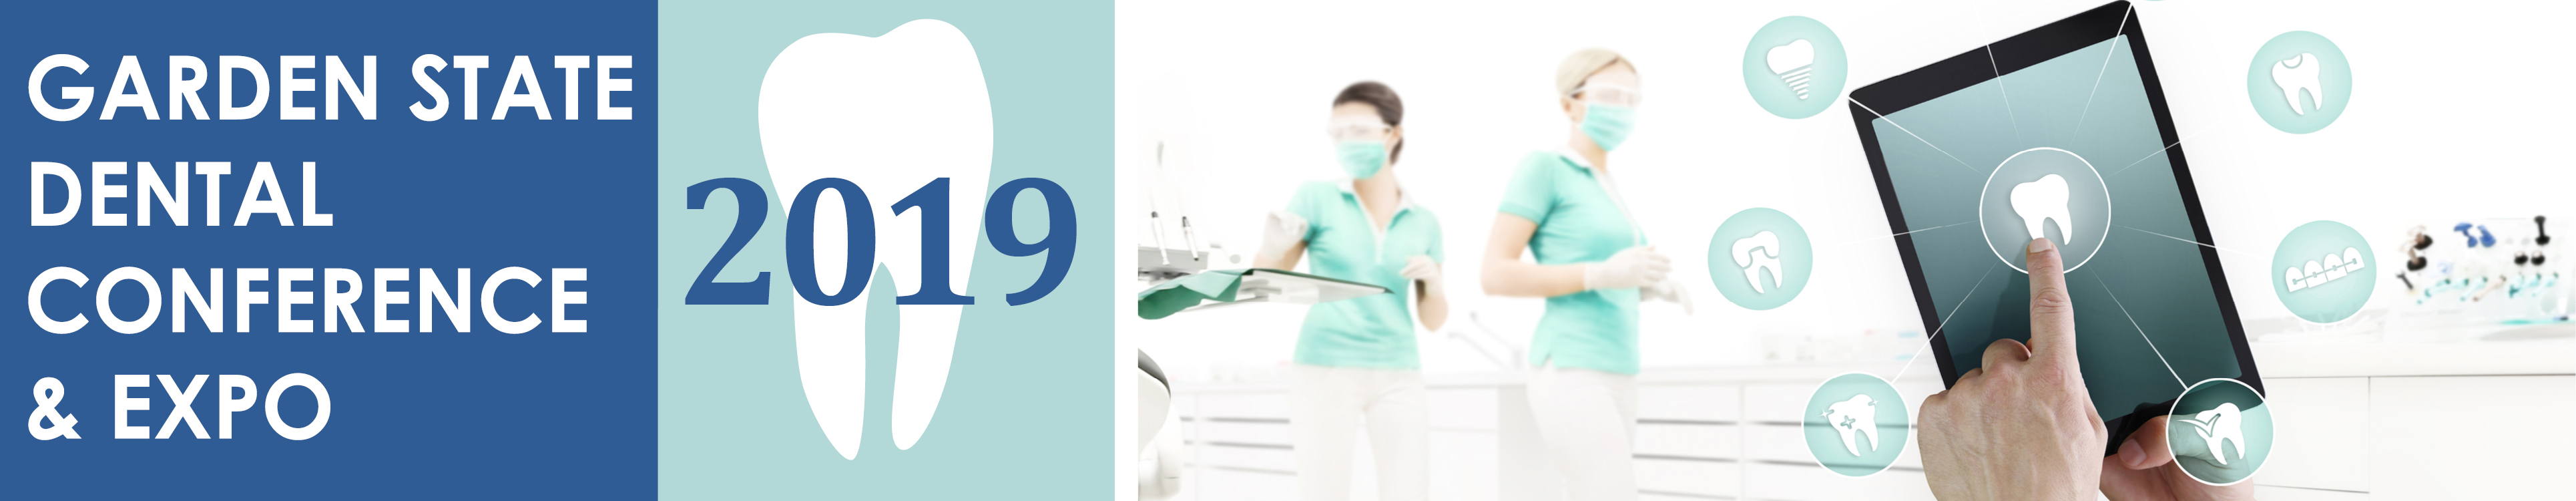 2019 Garden State Dental Conference & Expo